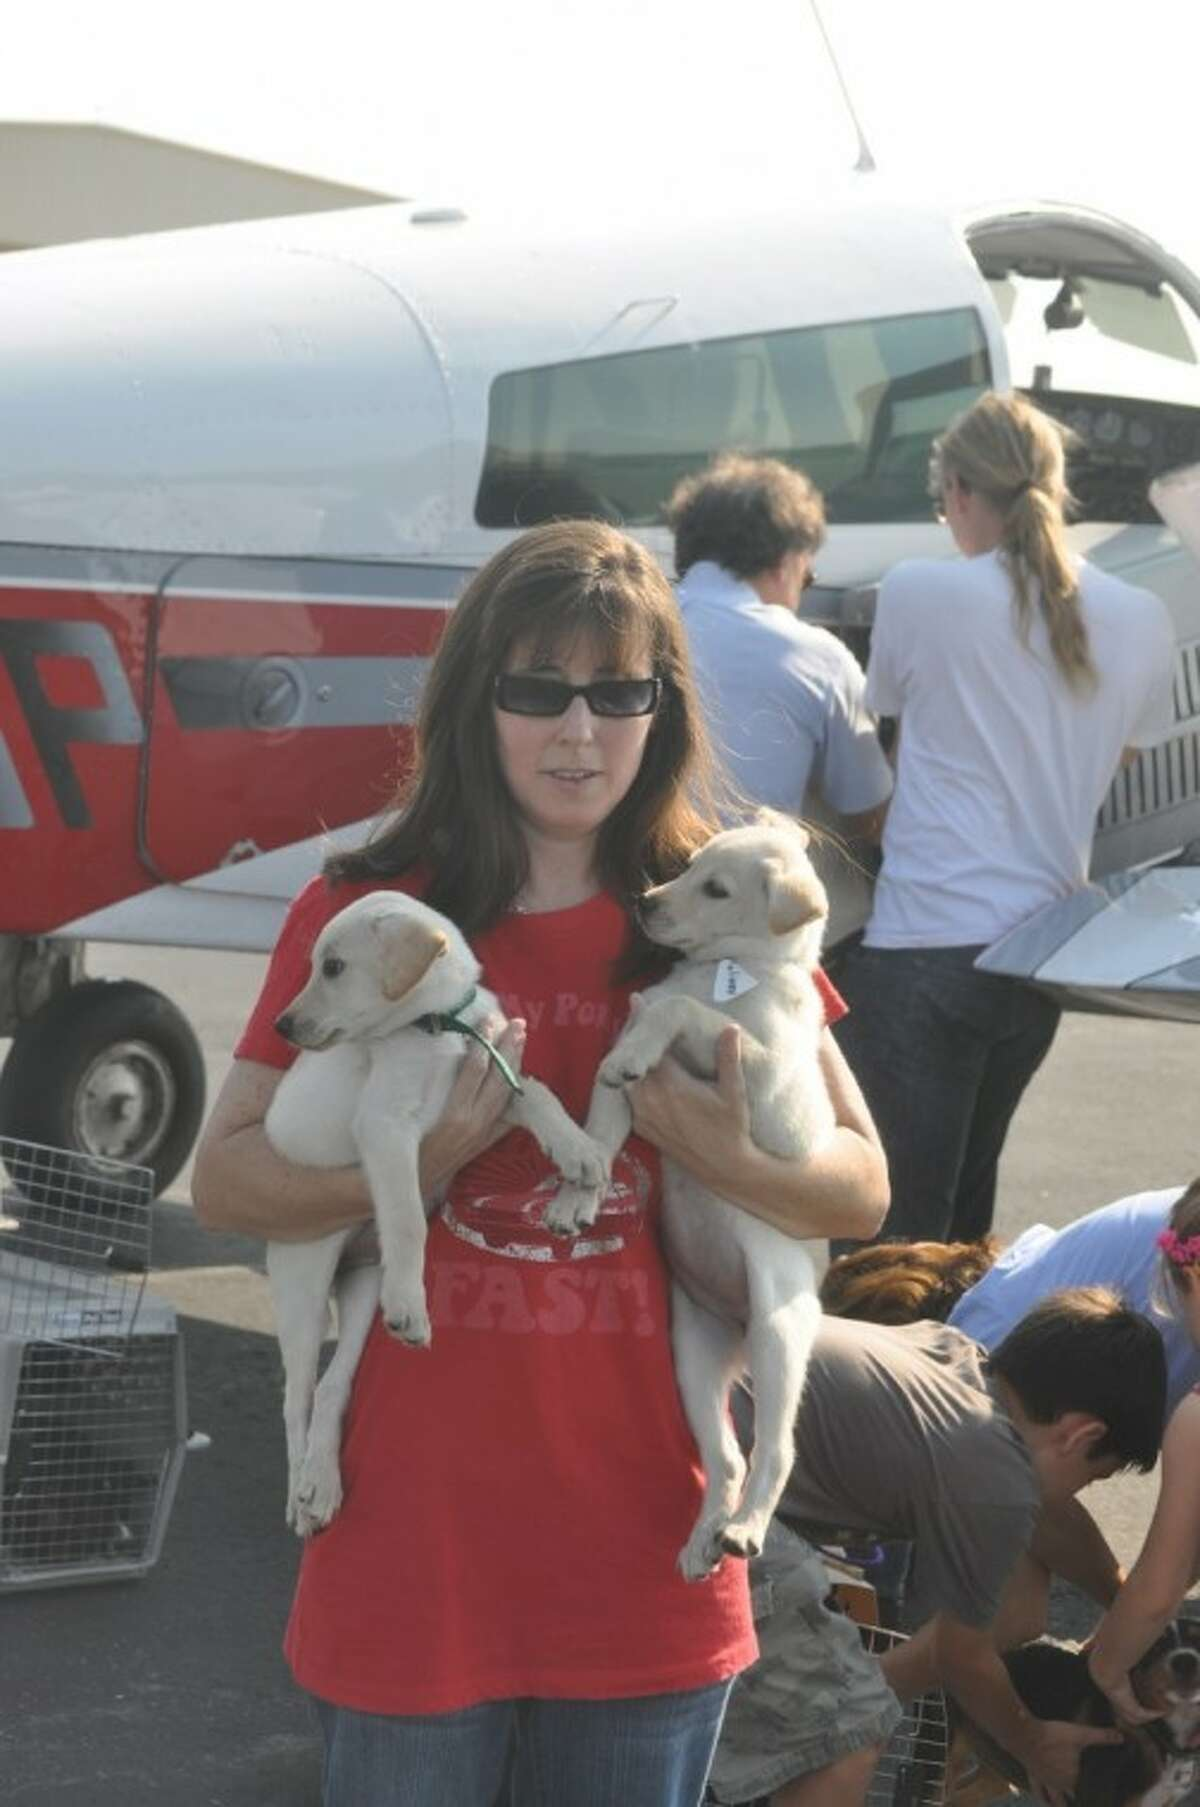 Kim Allen, OPA foster, volunteer holds Lindy and Lucy as they prepare for a plane trip north through Operation Pets Alive. Visit OperationPetsAlive.org for more information about this organization that transports dogs to northern states that have shelters with better save rates.